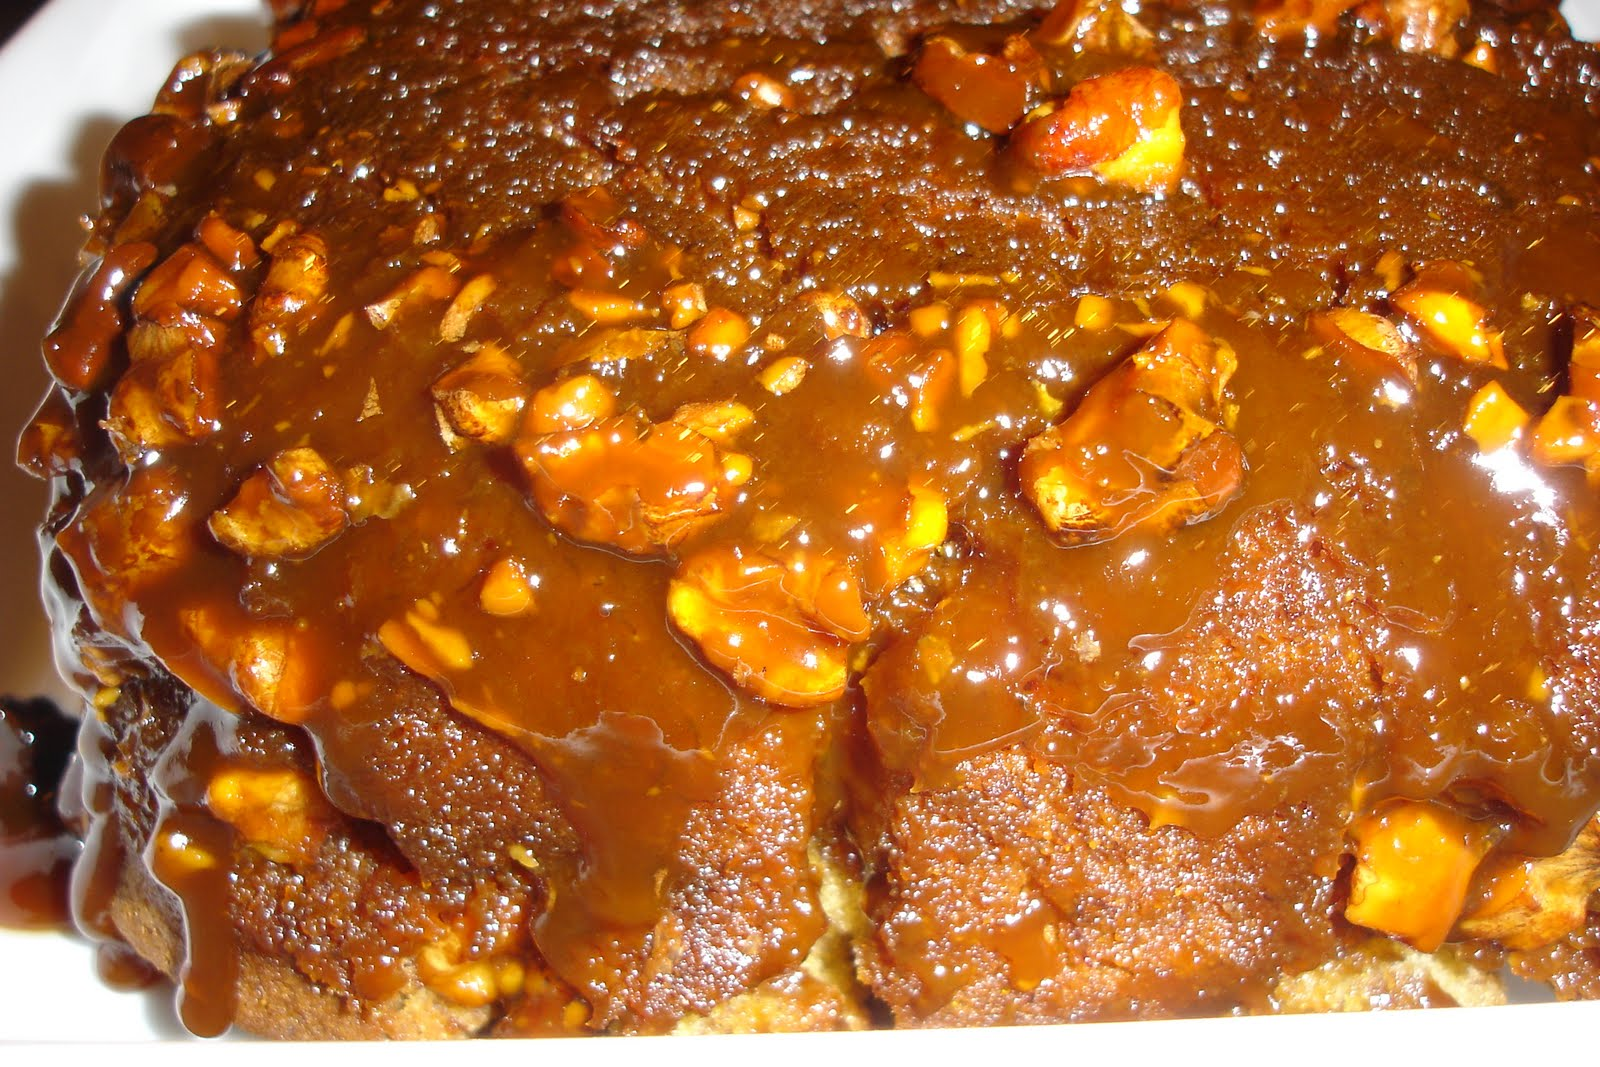 Yummilicious - The Food Blog: Caramel Walnut Upside-Down Banana Cake